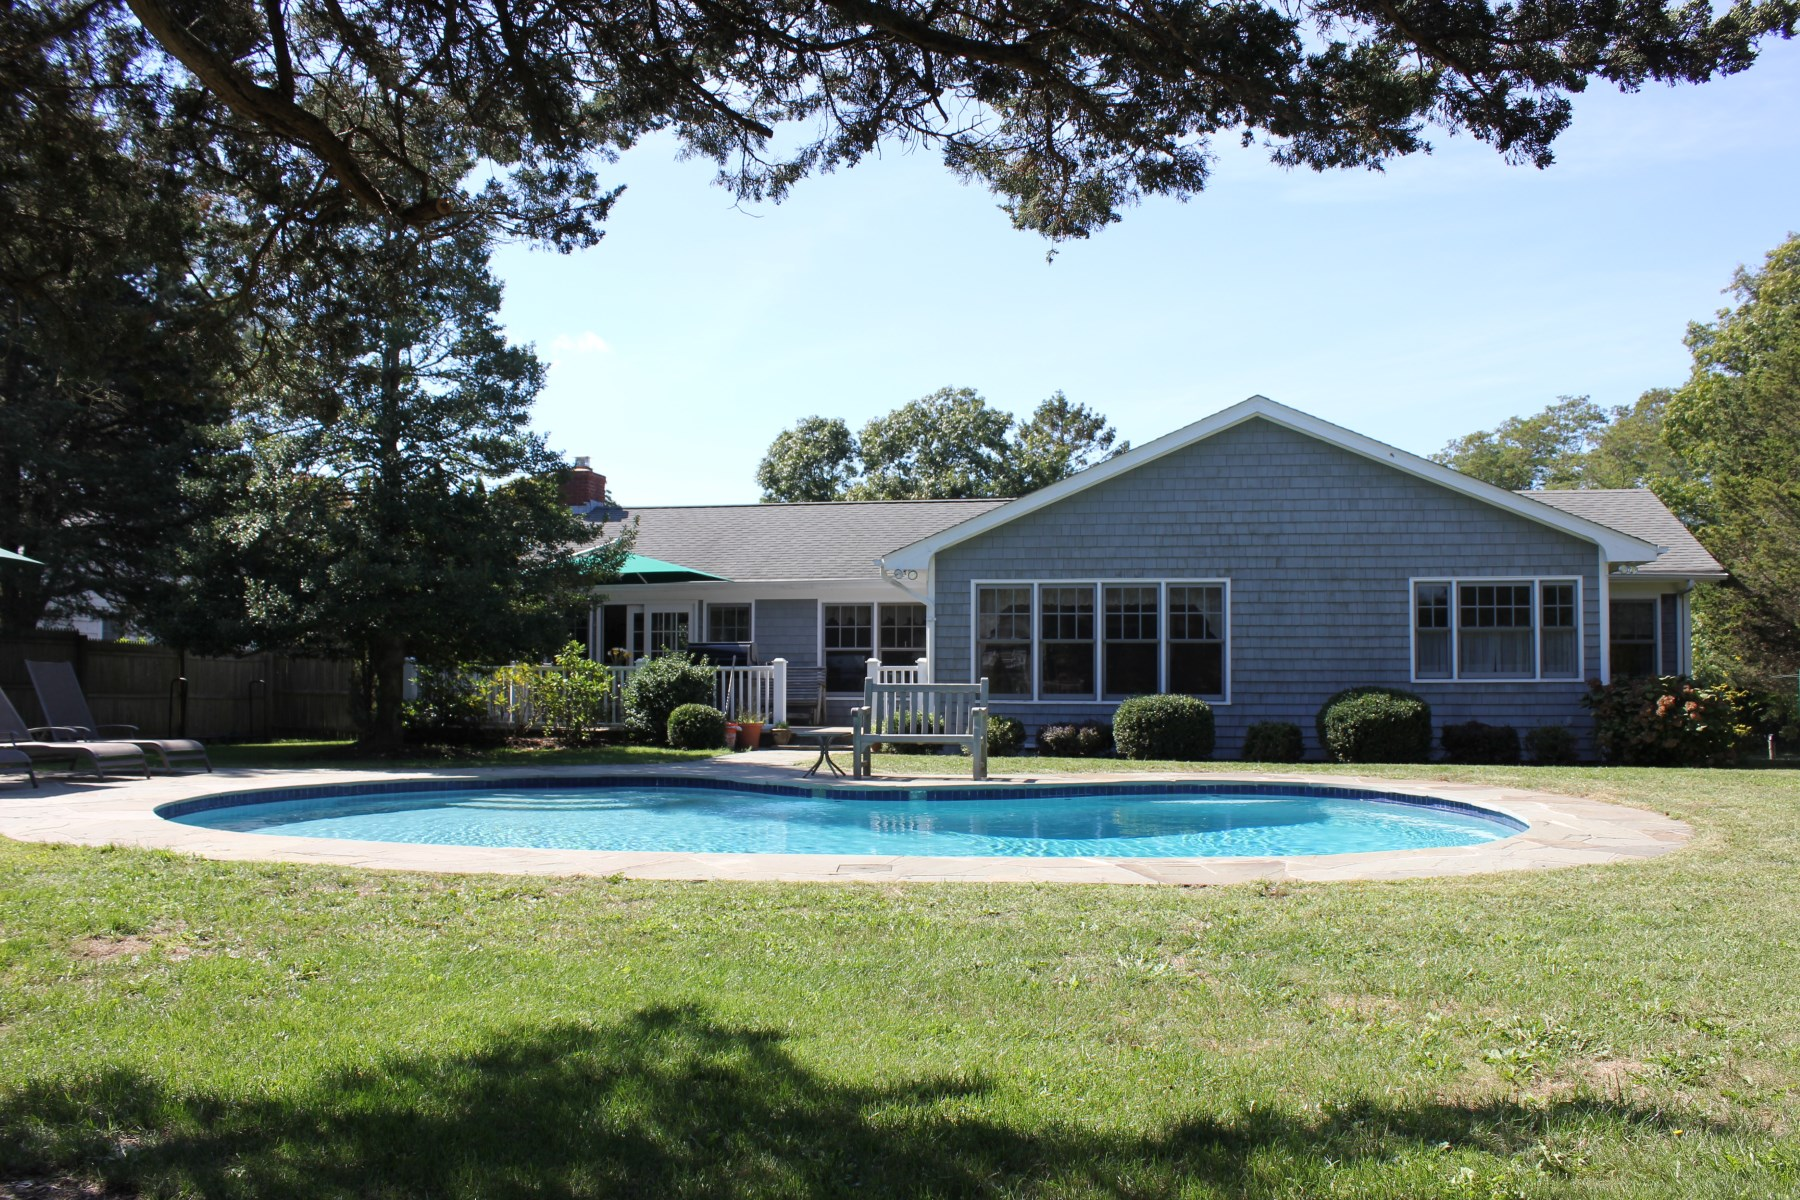 Single Family Home for Rent at Beautiful Ranch in Southampton 514 North Main Street Southampton, New York 11968 United States